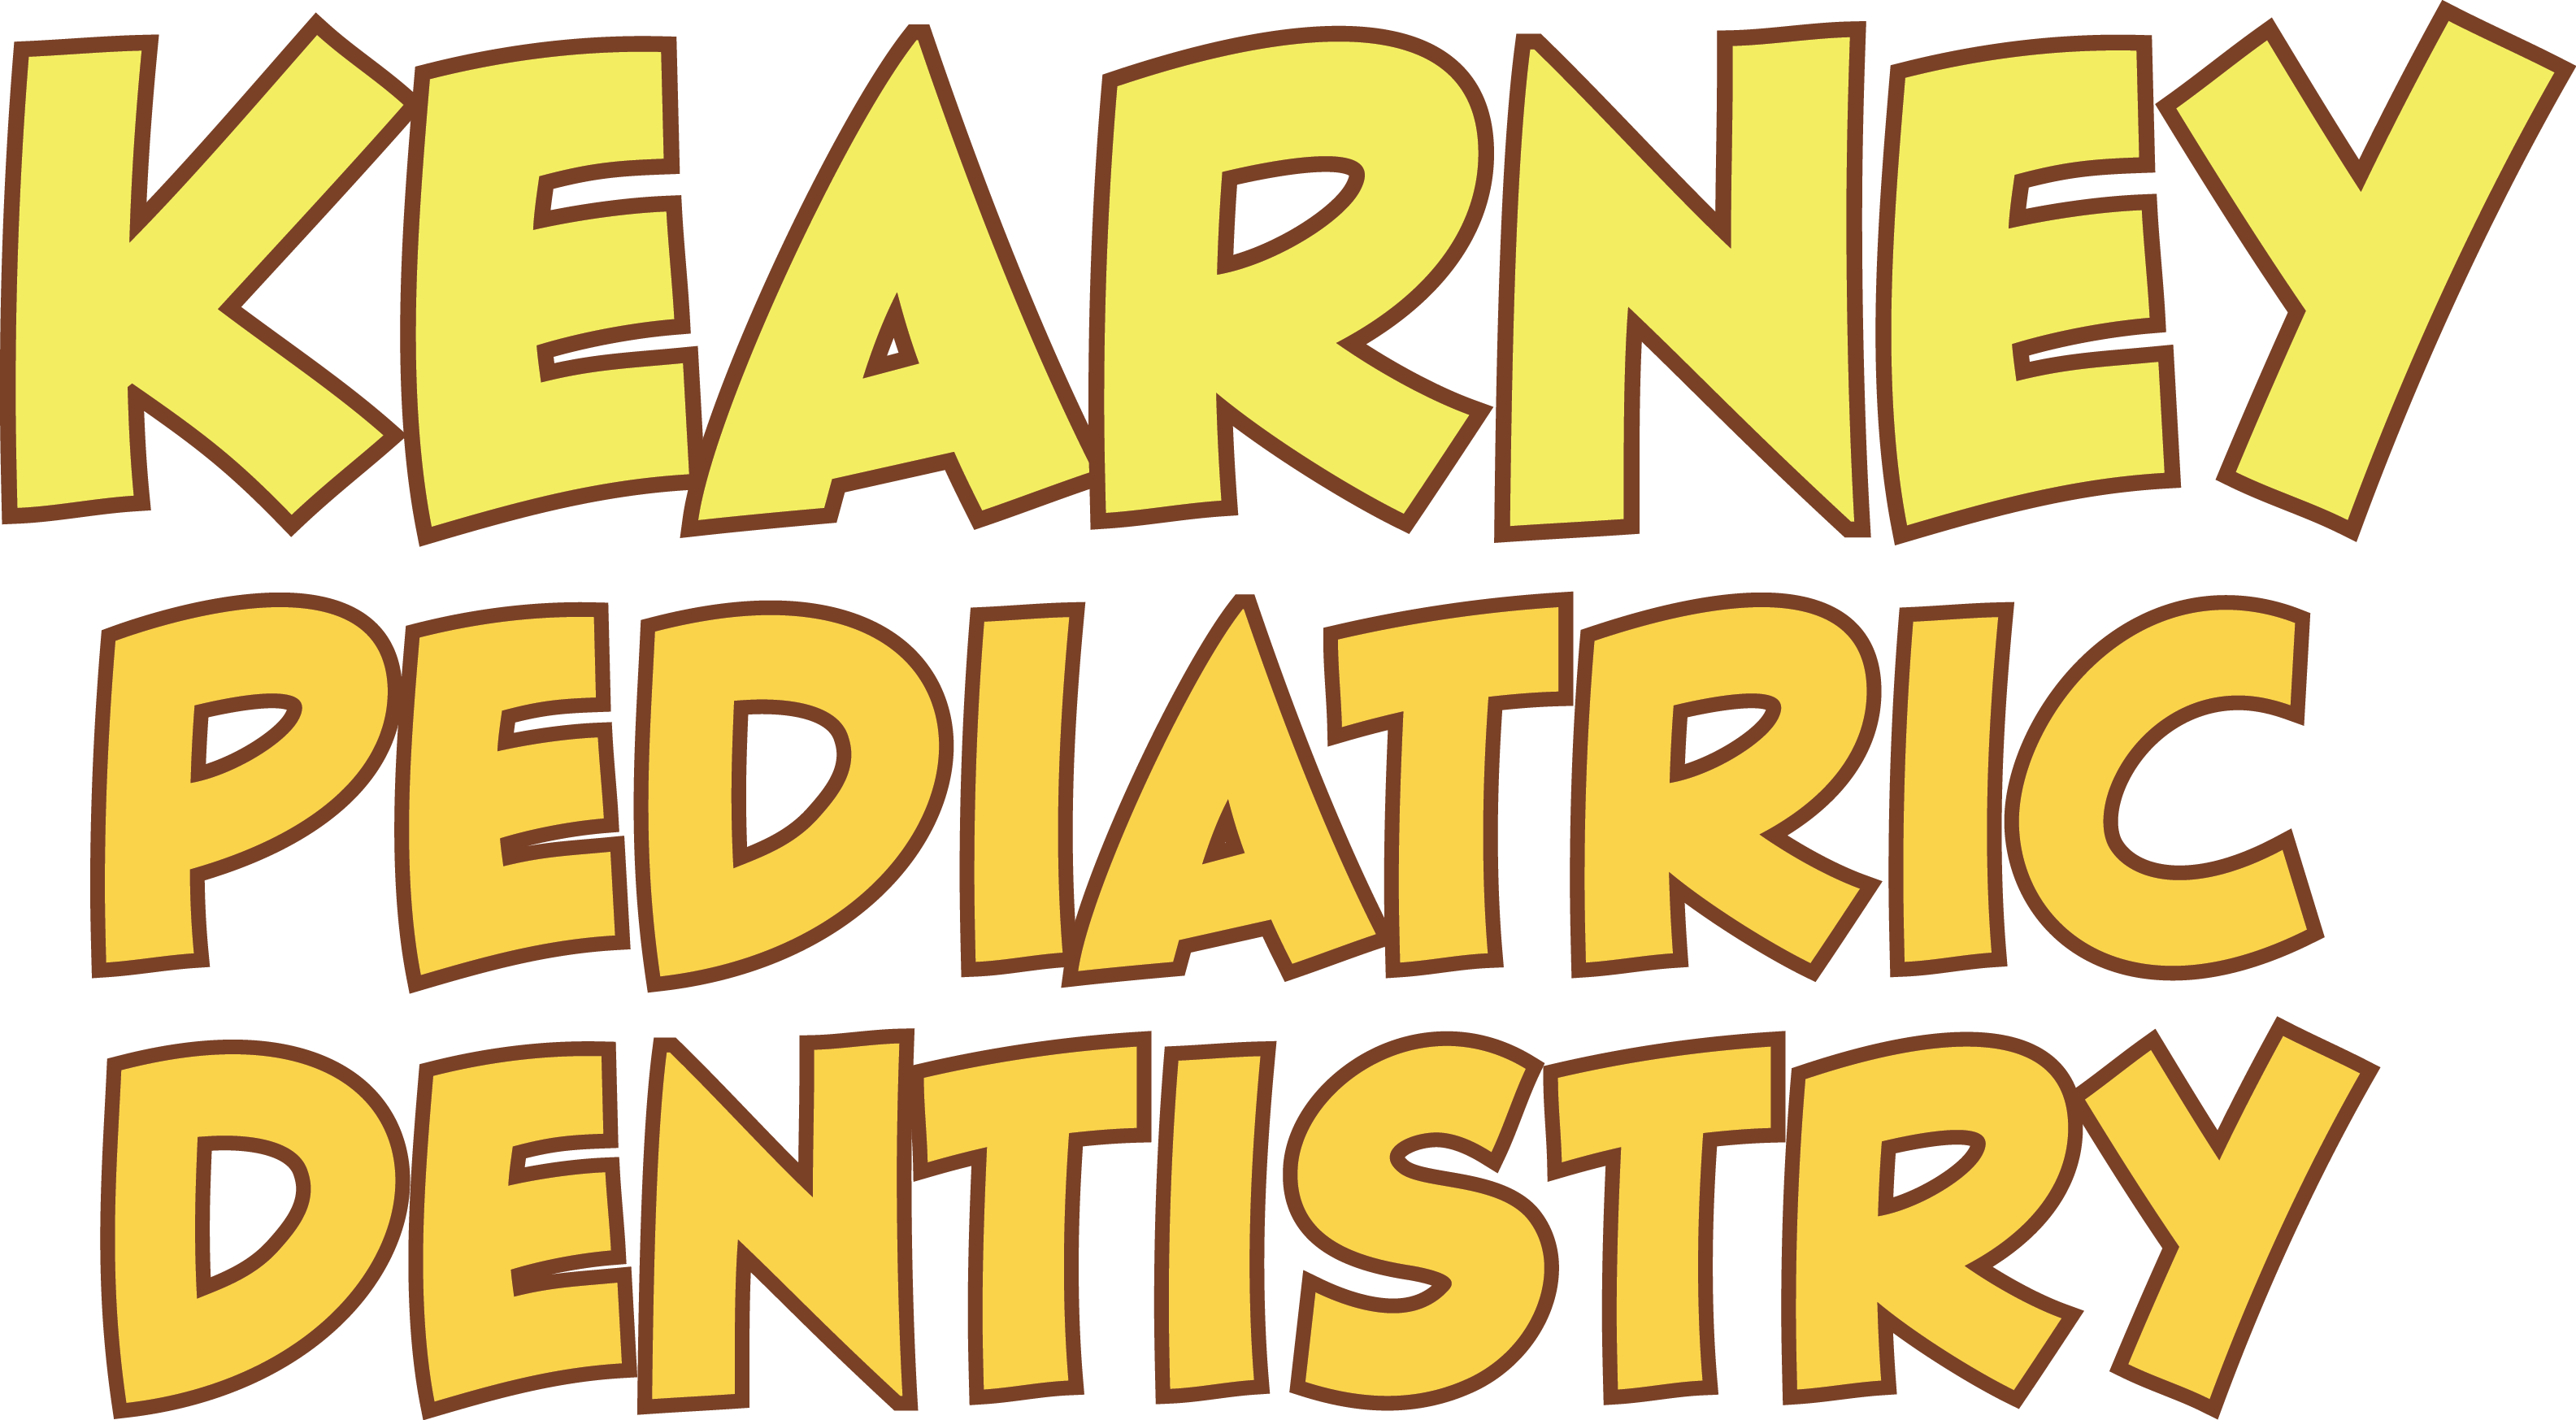 Kearney Pediatric Dentistry - Kearney Kids Dentist